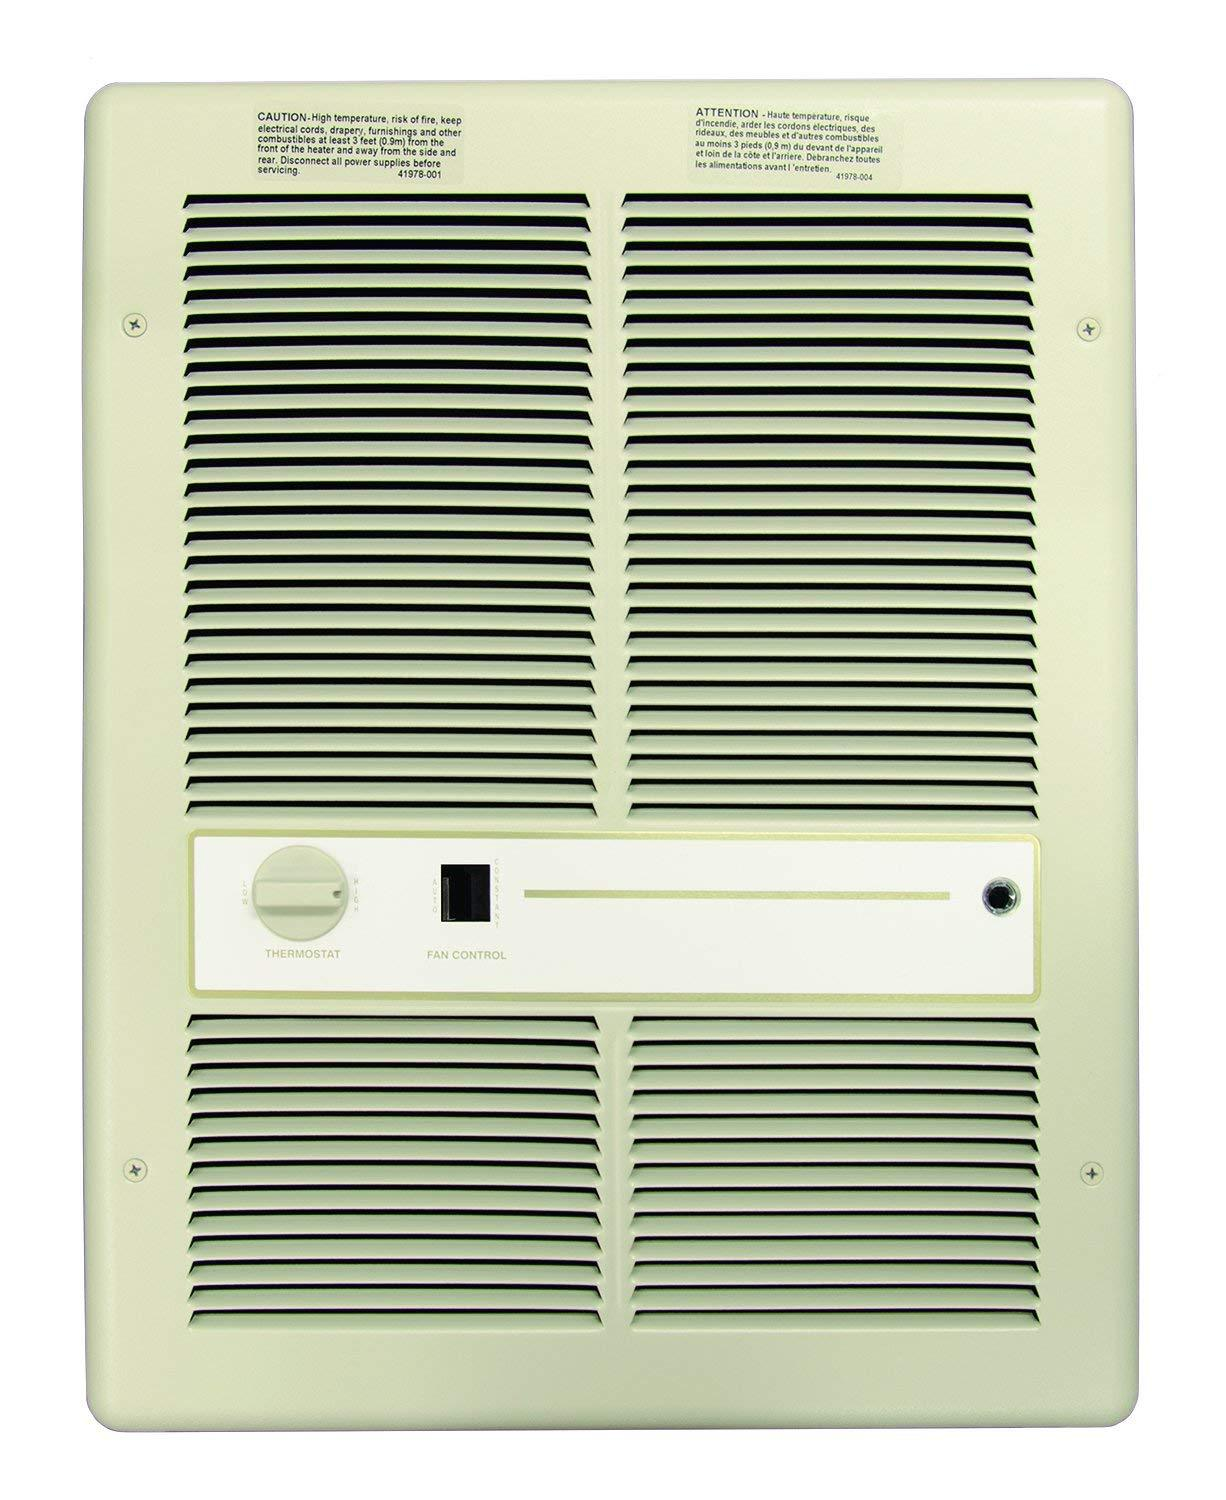 TPI 4000/3000W 240/208V 3310 Series Fan Forced Wall Heater (Ivory) - With Summer Fan Switch - 1 Pole Thermostat - HF3316TSRP